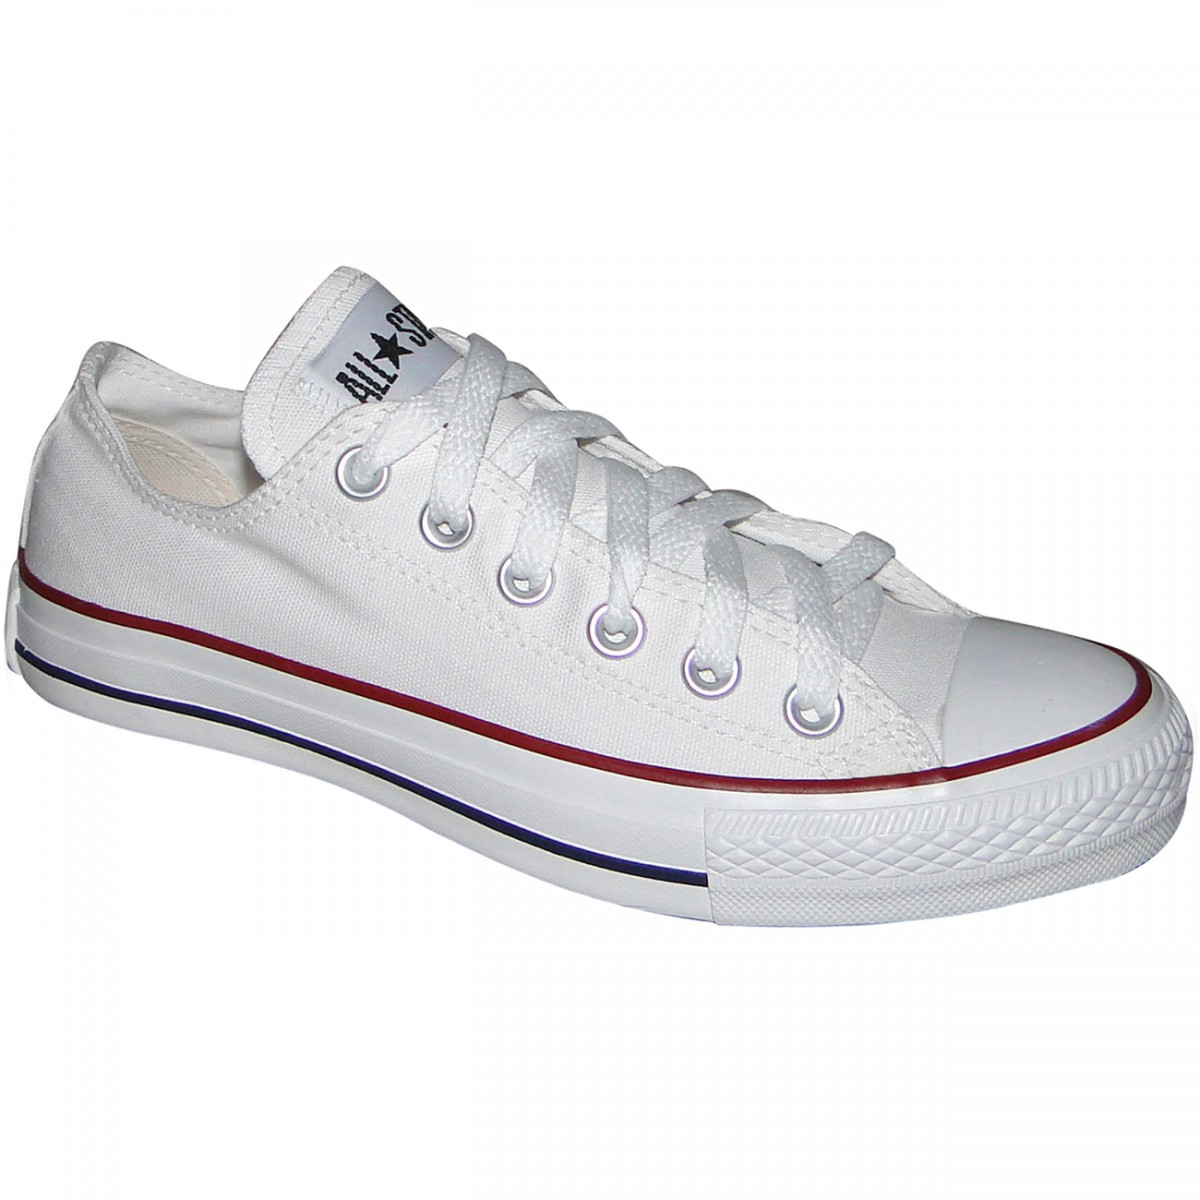 d970f0de939 TENIS ALL STAR CONVERSE CORE CT114002 - BRANCO - Chuteira Nike ...